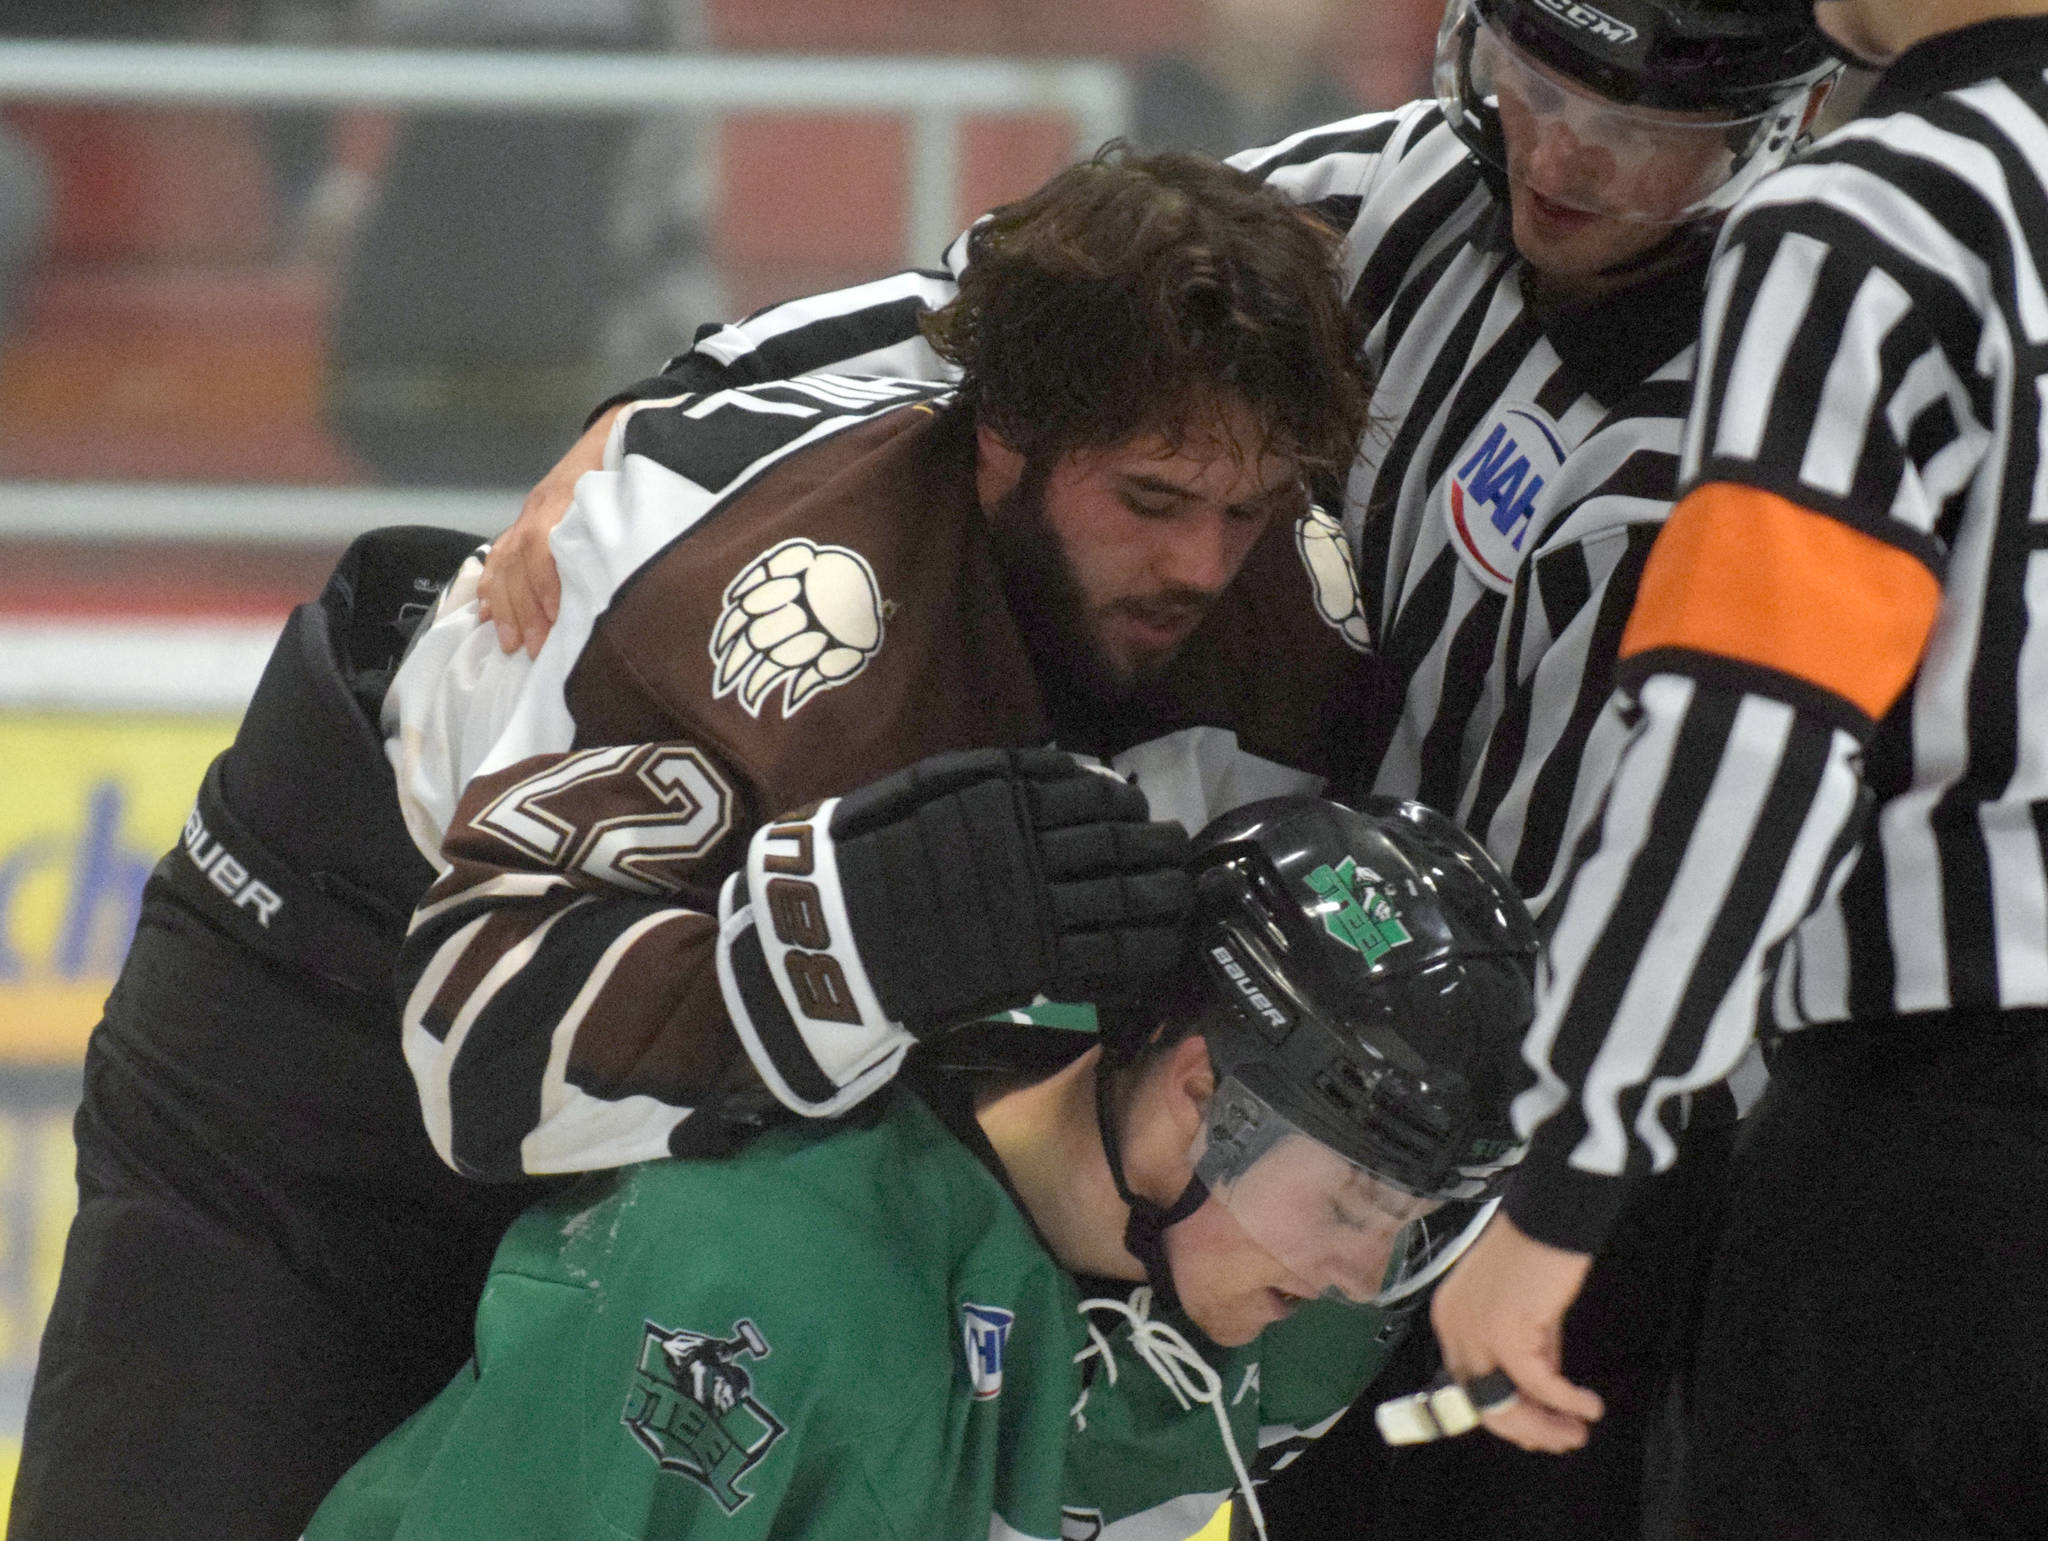 Kenai River Brown Bears defenseman Connor Scahill is involved in a brief scuffle with Jordan Gonzalez of the Chippewa (Wisconsin) Steel on Oct. 5, 2018, at the Soldotna Regional Sports Complex. (Photo by Jeff Helminiak/Peninsula Clarion)